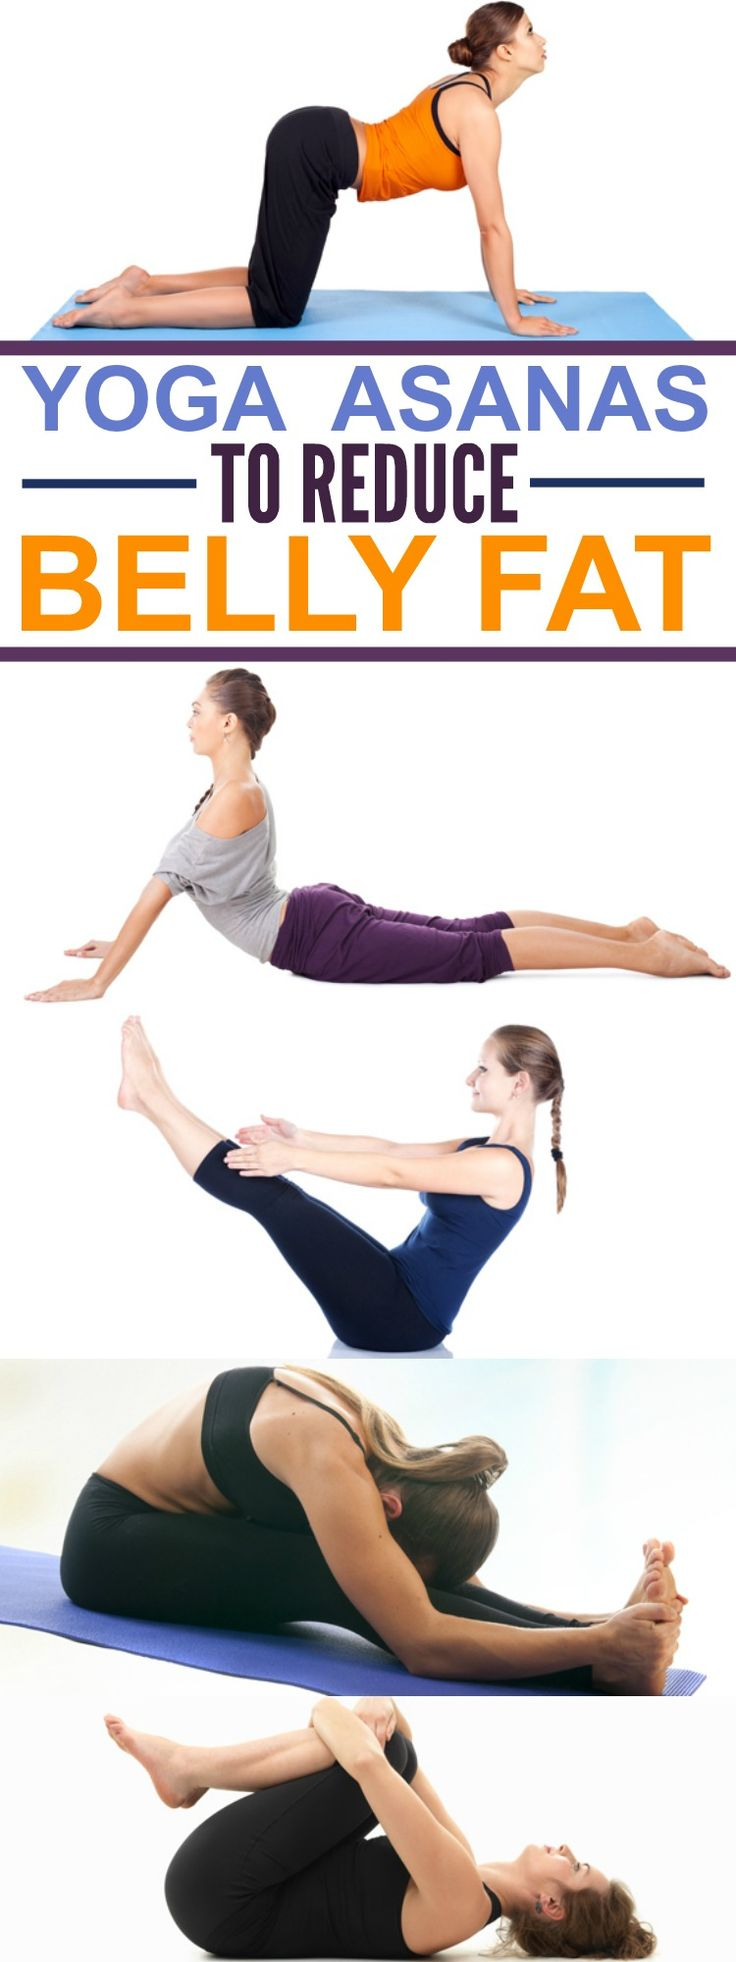 A healthy life: Top 12 Yoga Asanas To Reduce Belly Fat